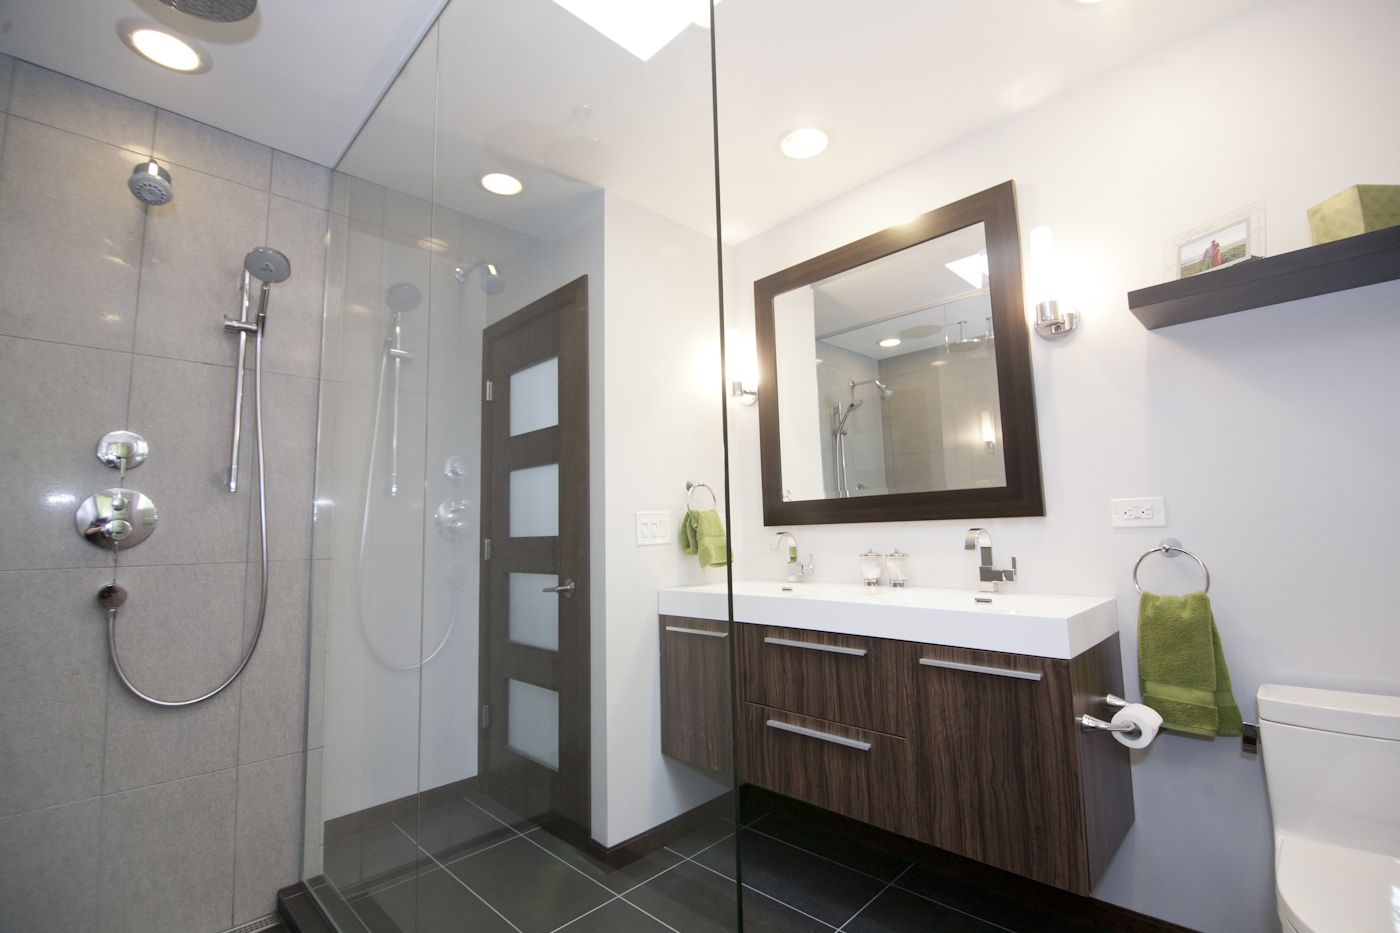 Spa bathroom lighting ideas, picture from Archway ...